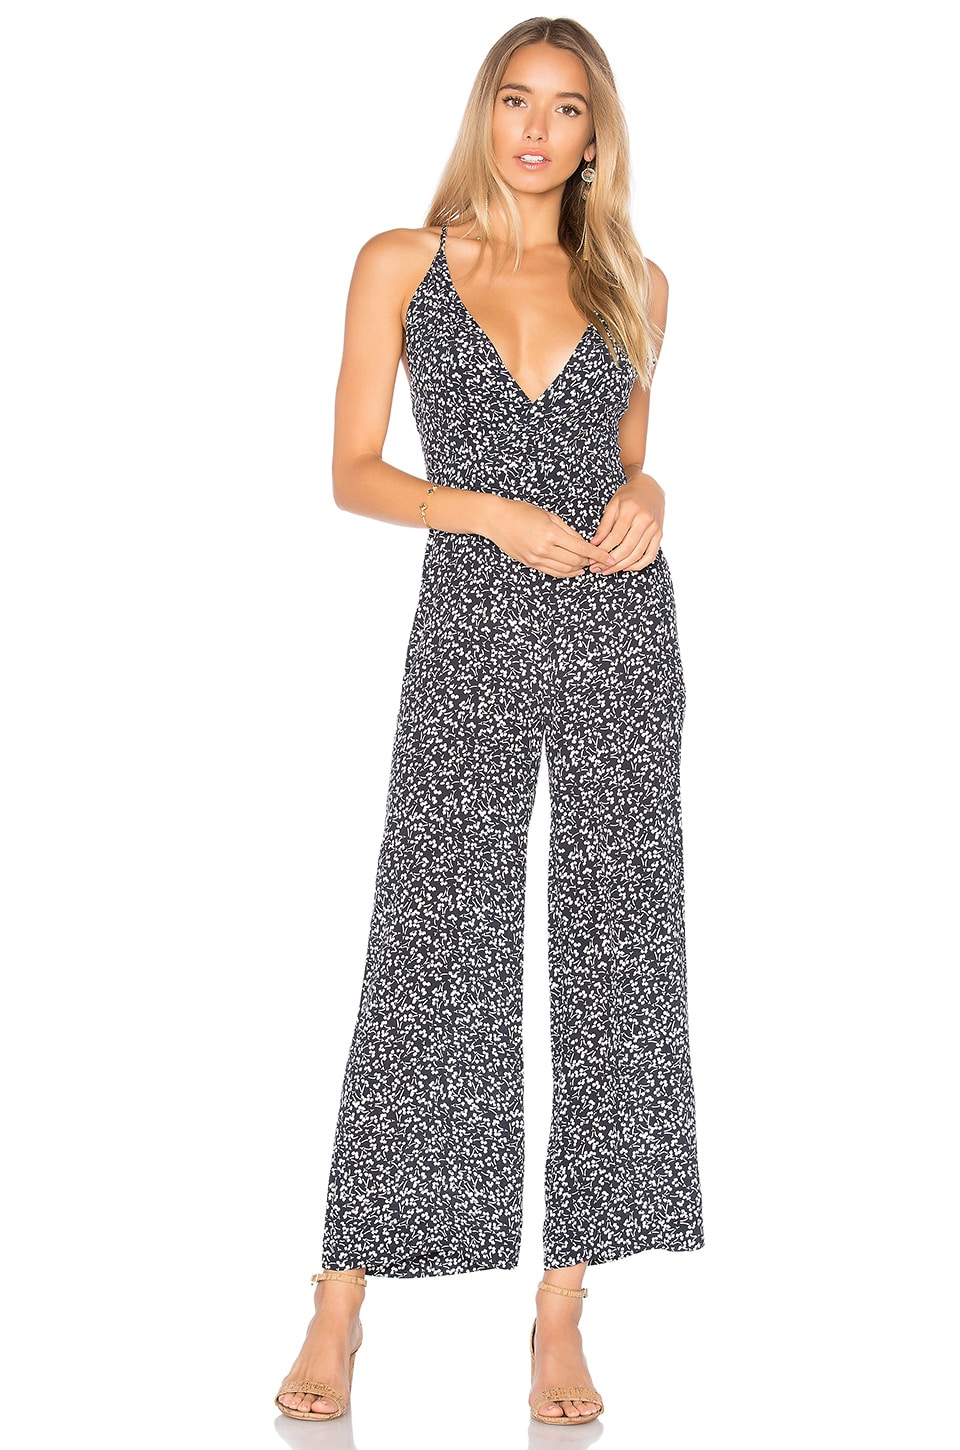 ROLLA'S Jerry Jumpsuit in Black Mirage